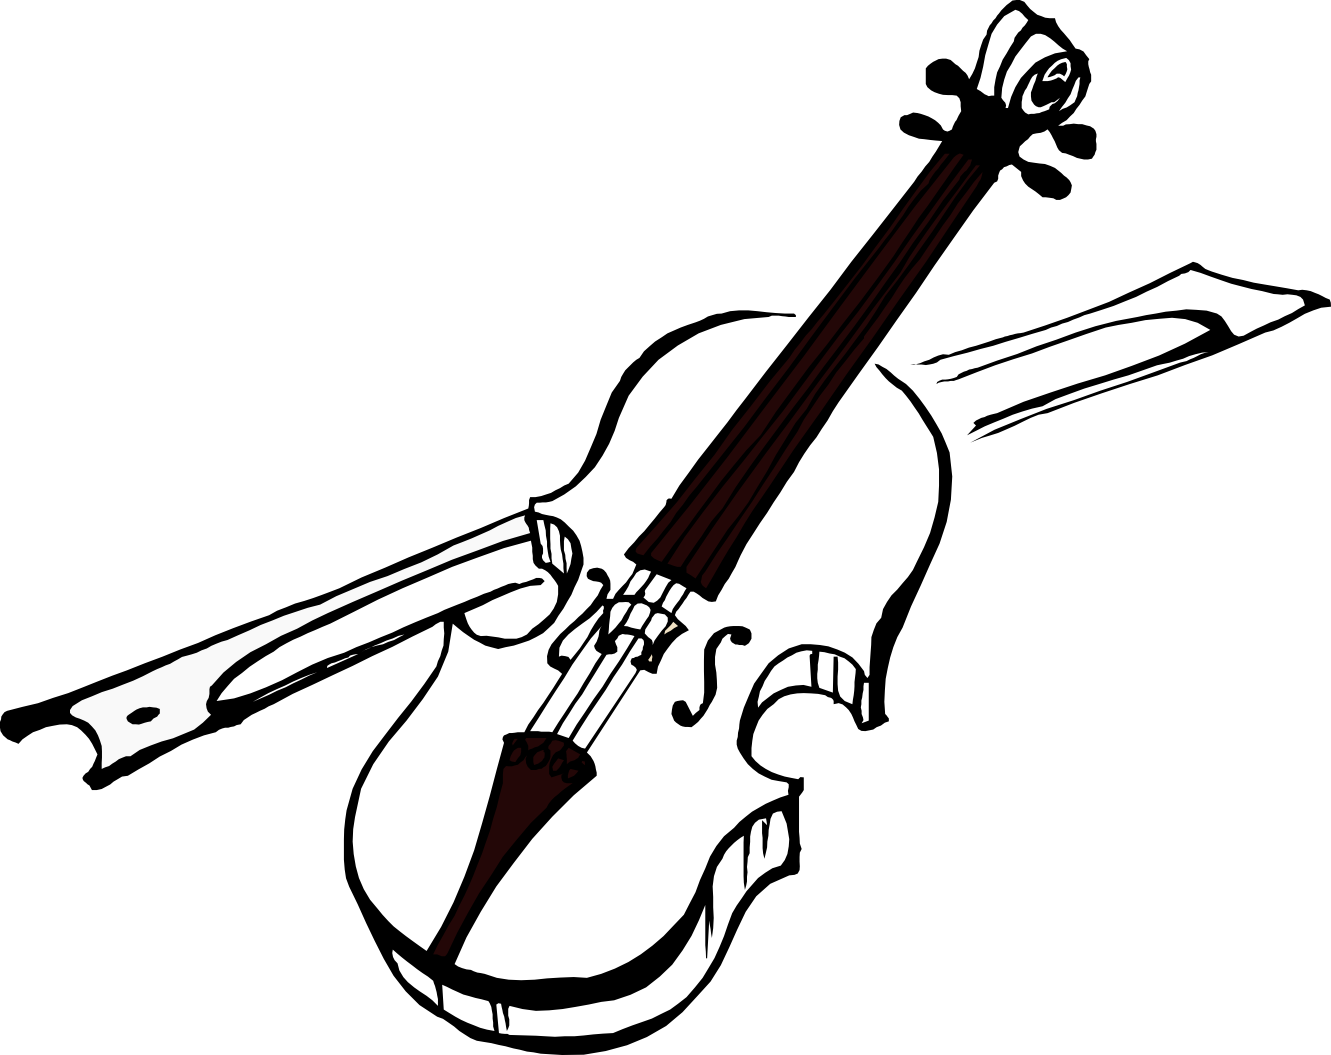 Cello Clipart Black And White.